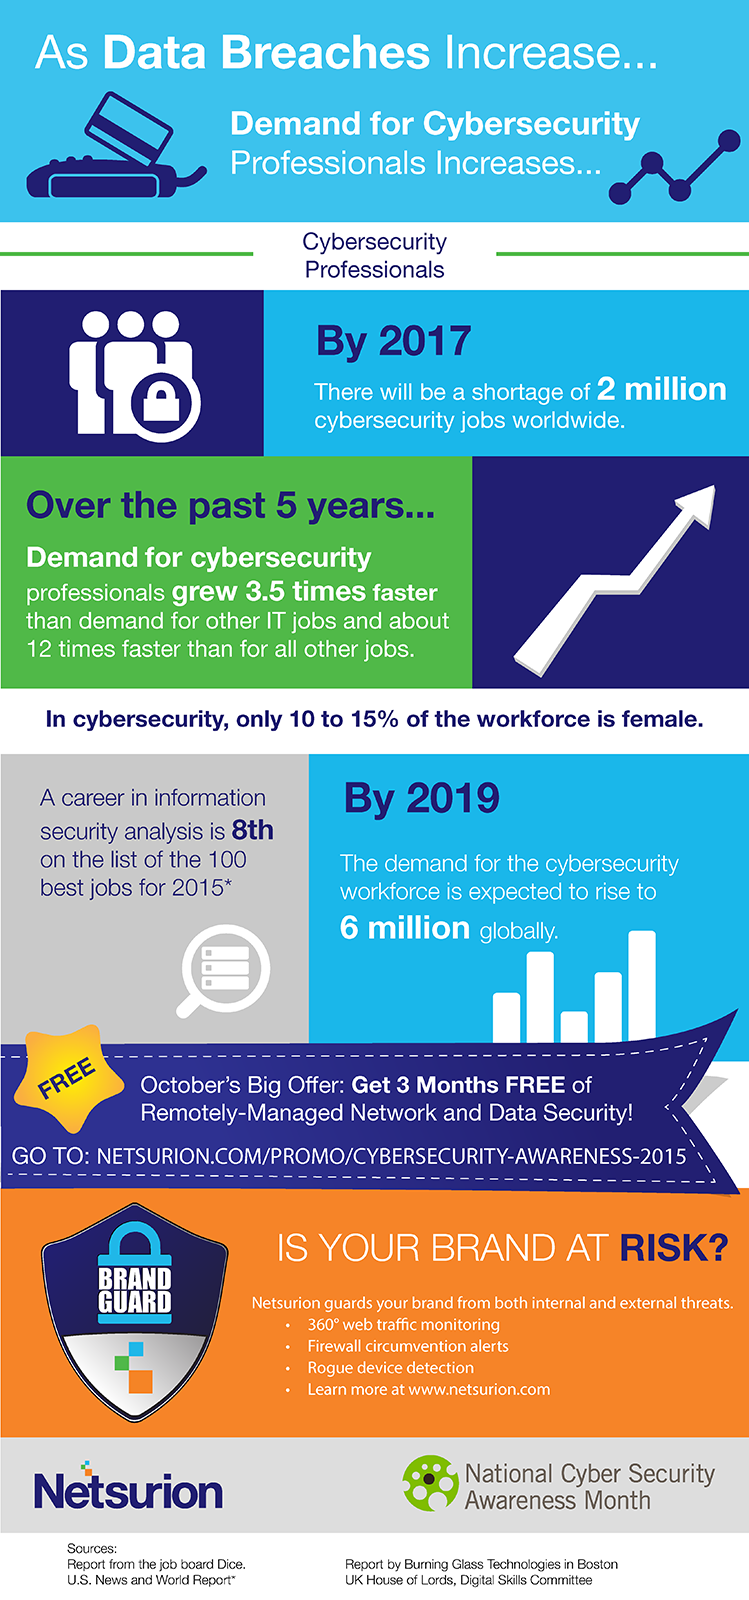 future demand for cybersecurity professionals